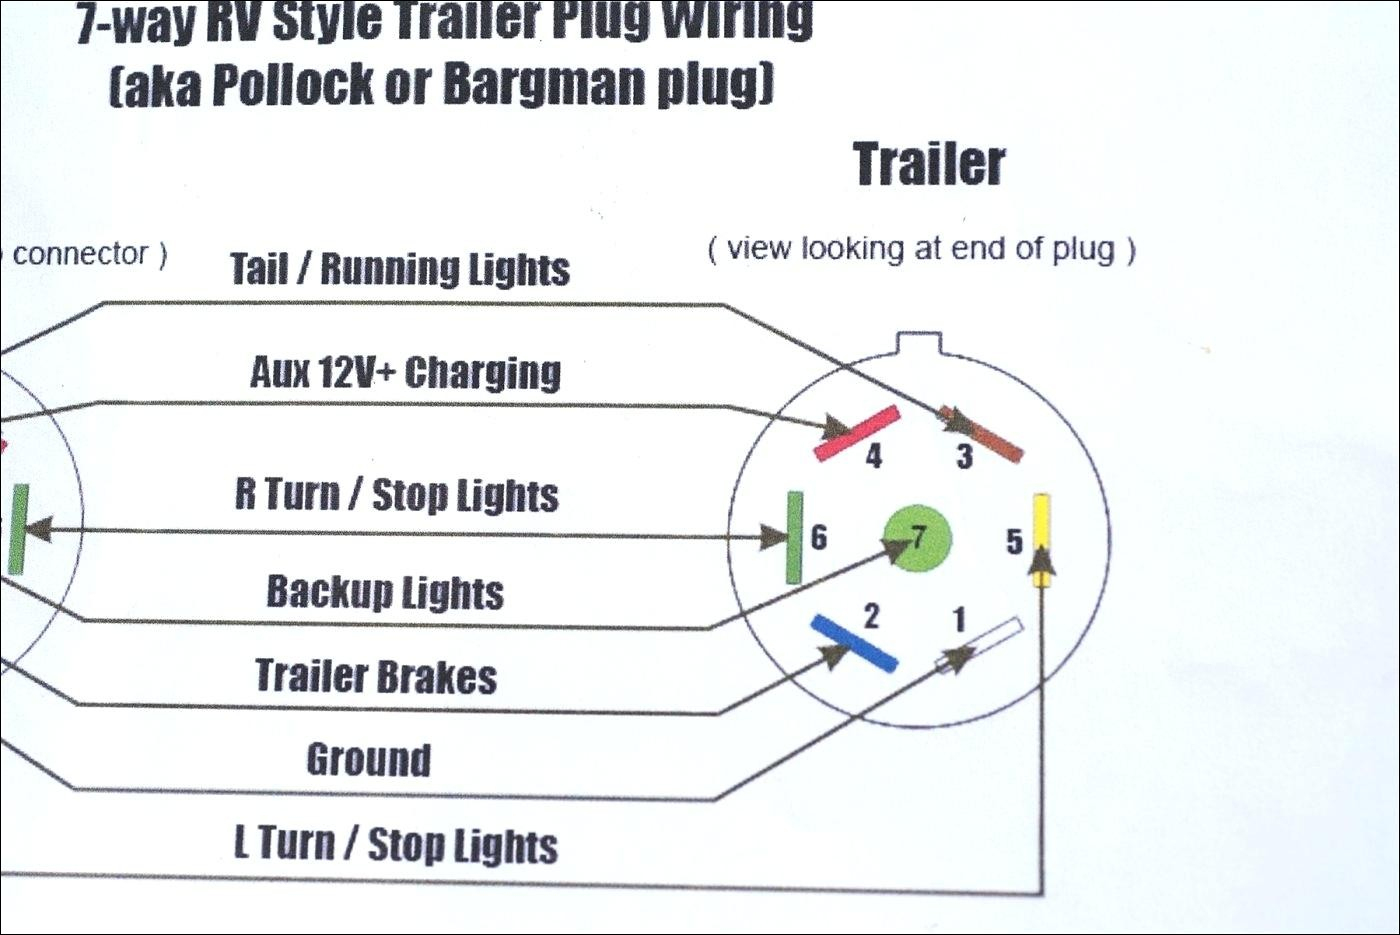 Pj Trailer Brake Wiring Diagram | Manual E-Books - Pj Trailer Brake Wiring Diagram